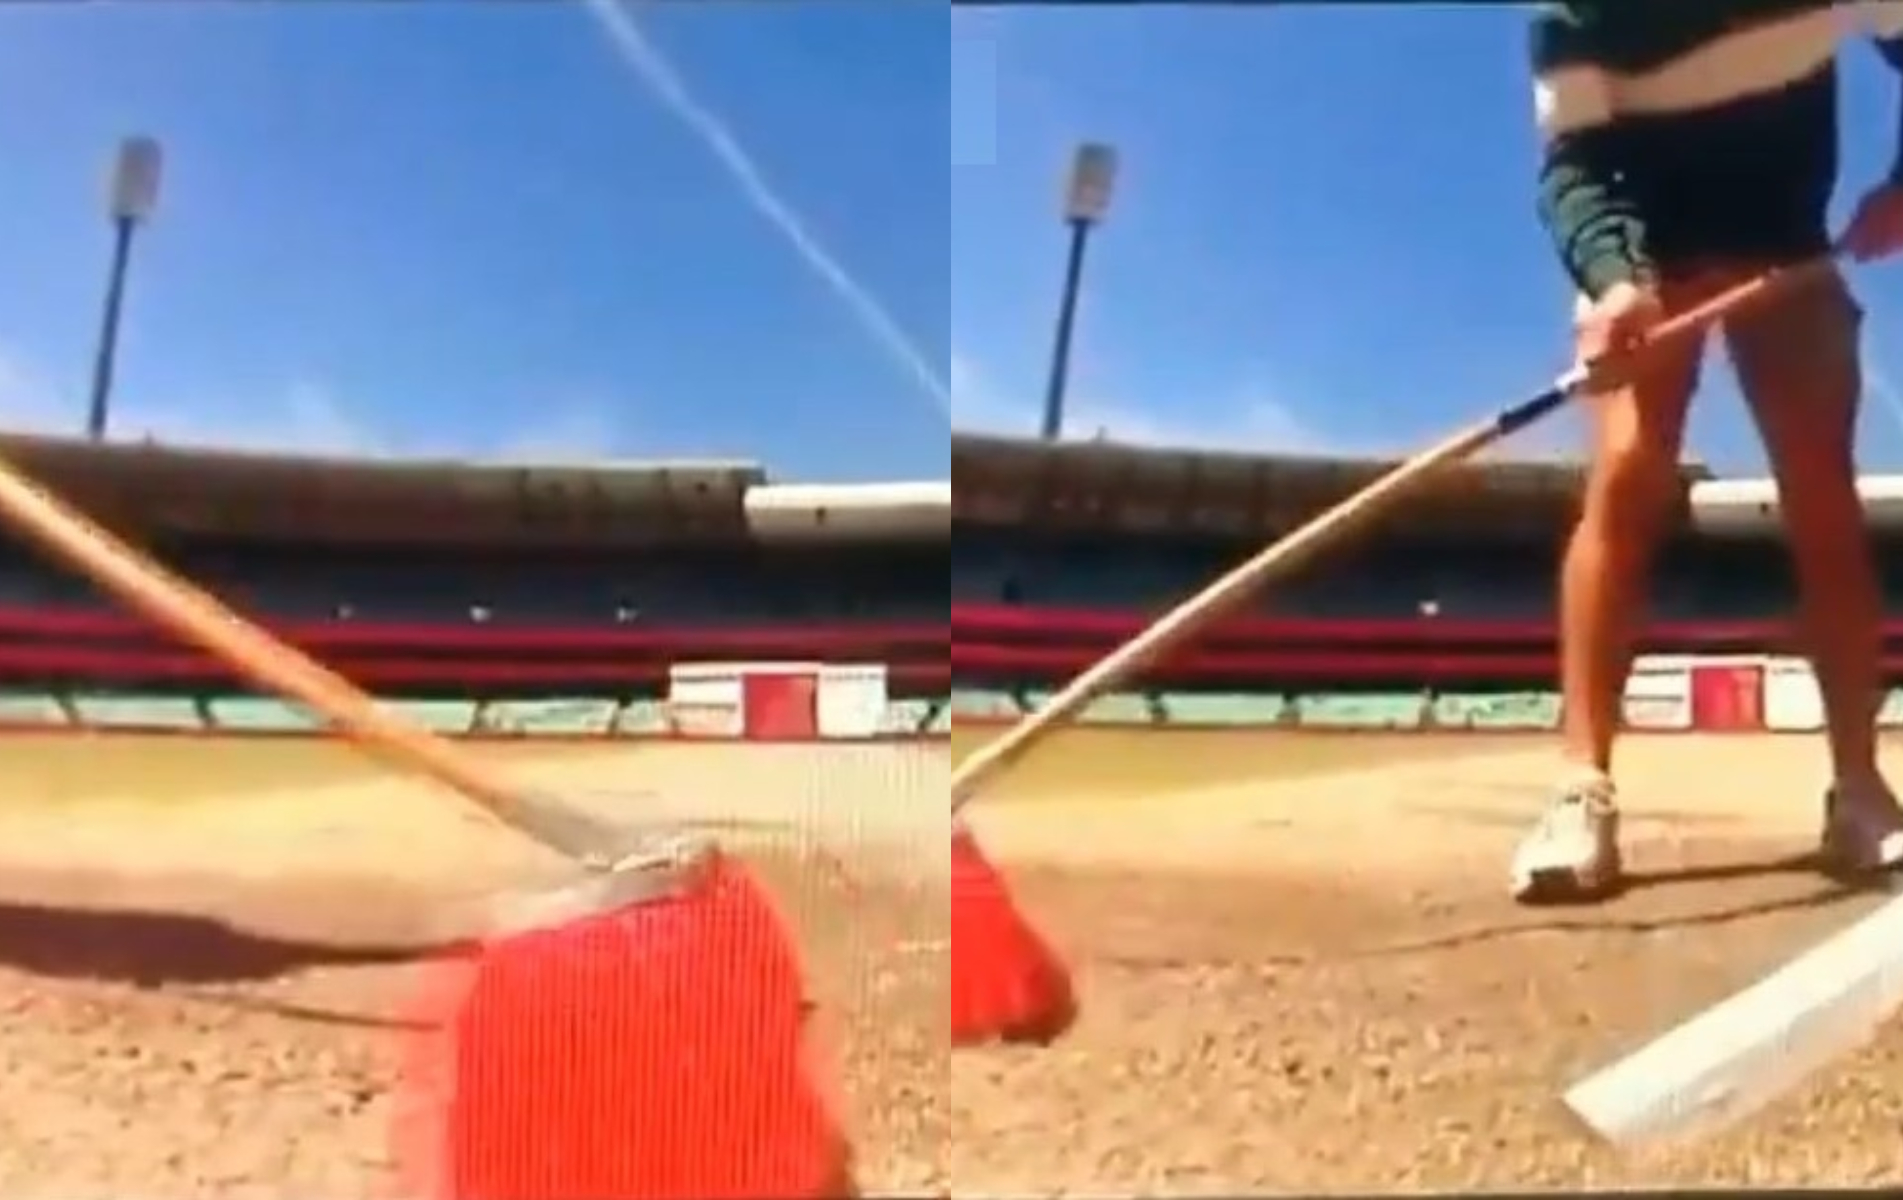 New extended footage shows ground staff already wiping off any marks during that break